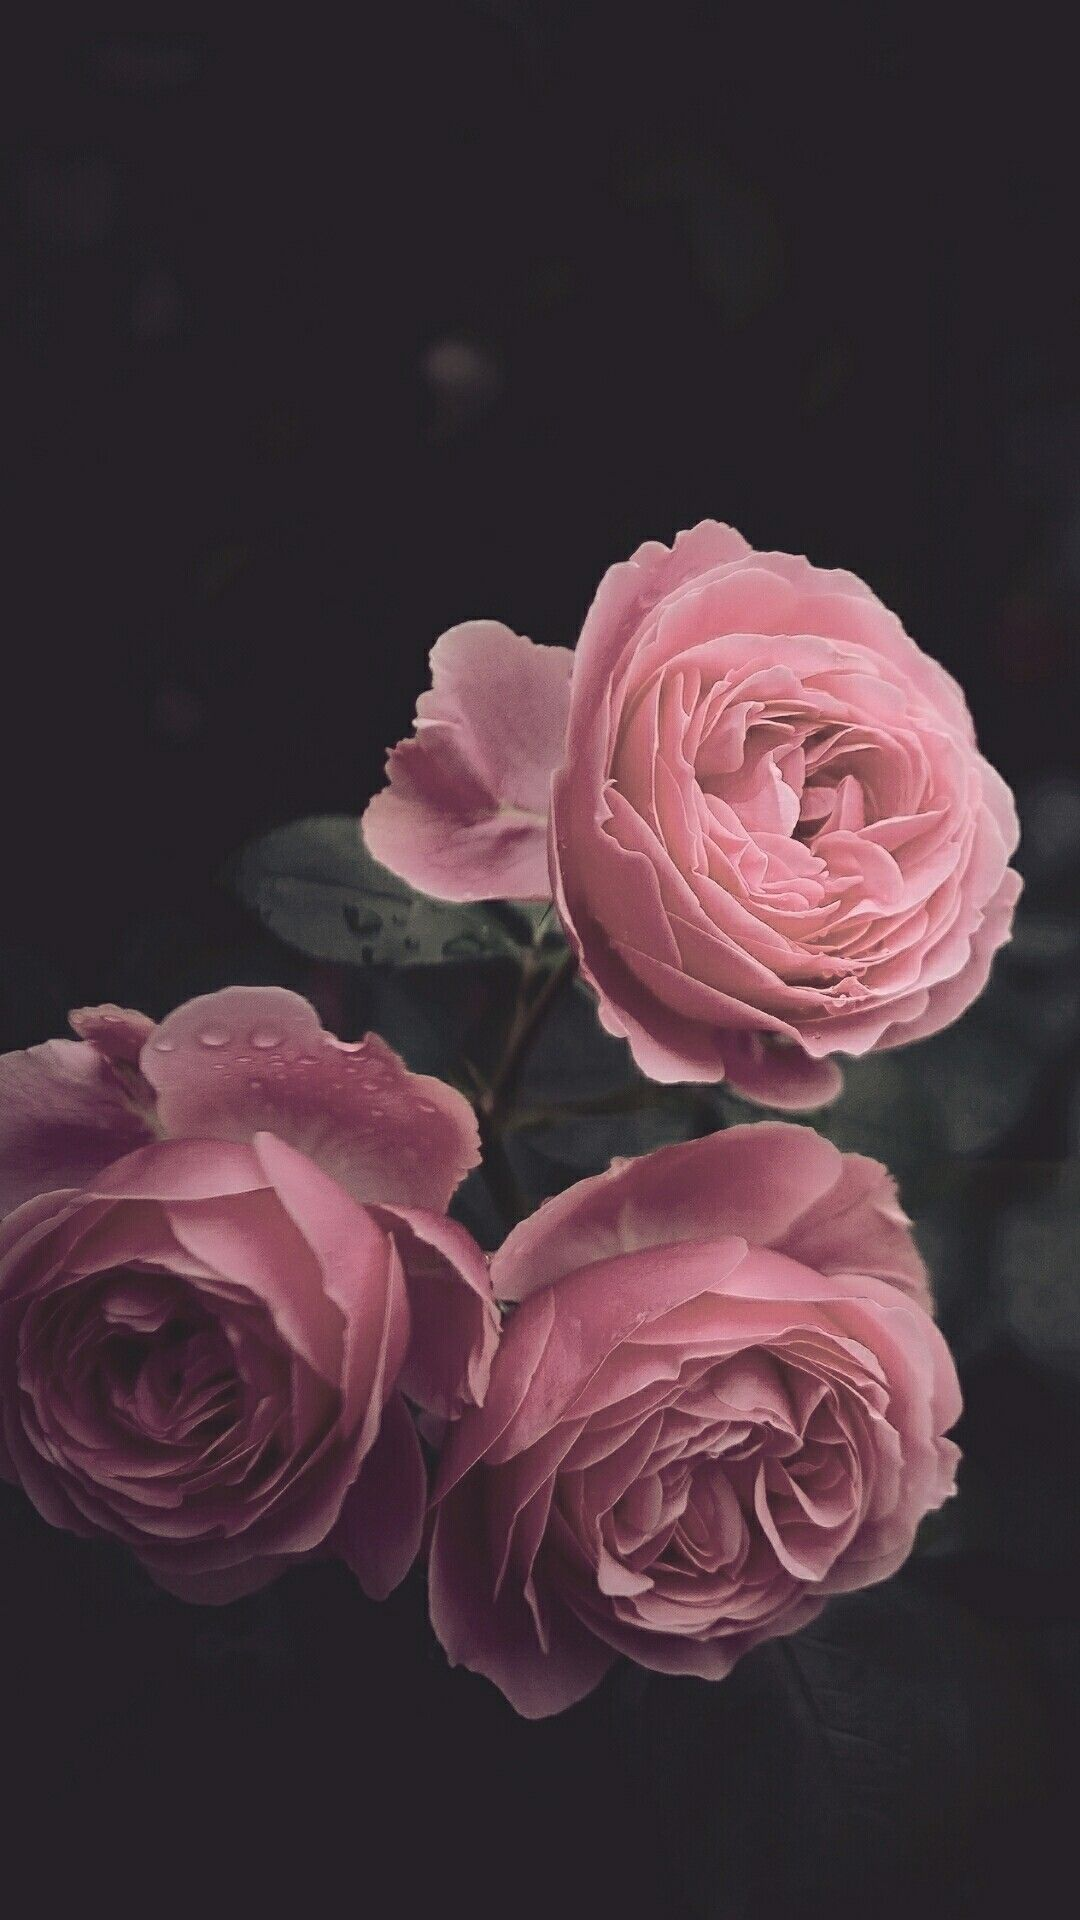 Flower Garden Roses Pink Rose Petal Floribunda Floral Wallpaper Iphone Floral Wallpaper Rose Wallpaper